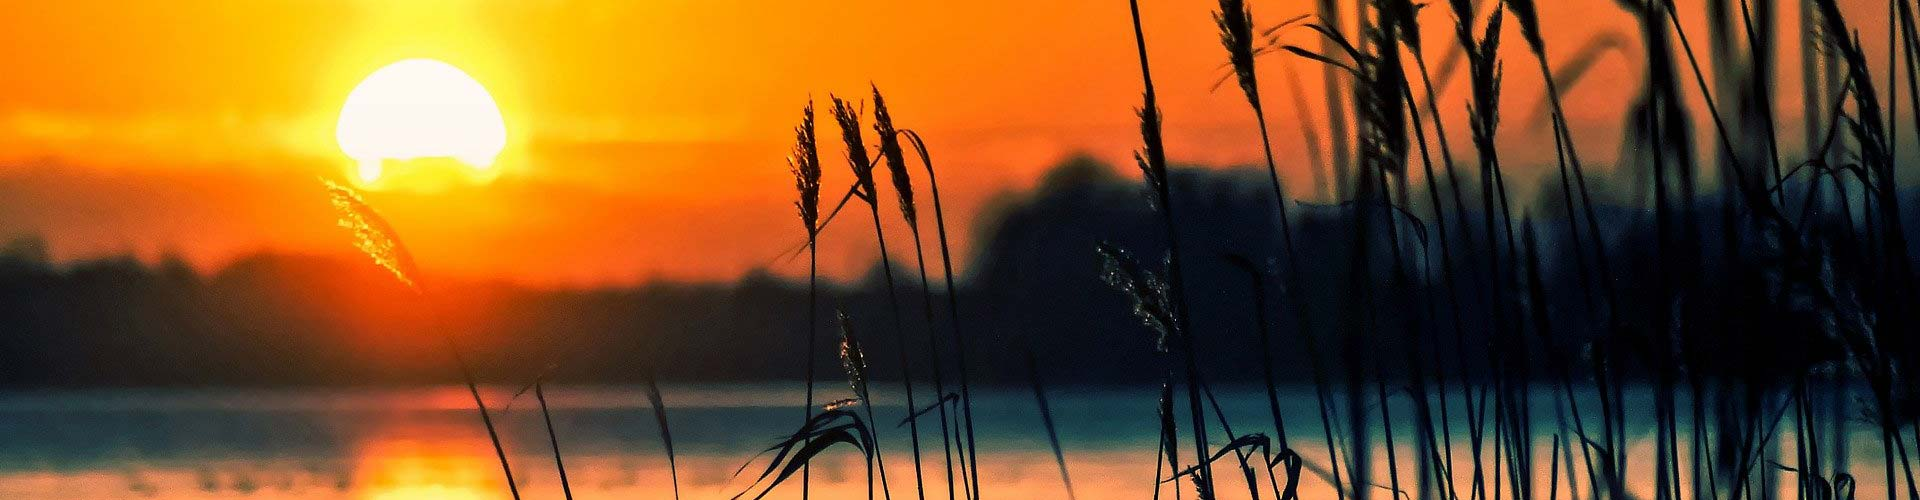 Sunset over a lake with foliage